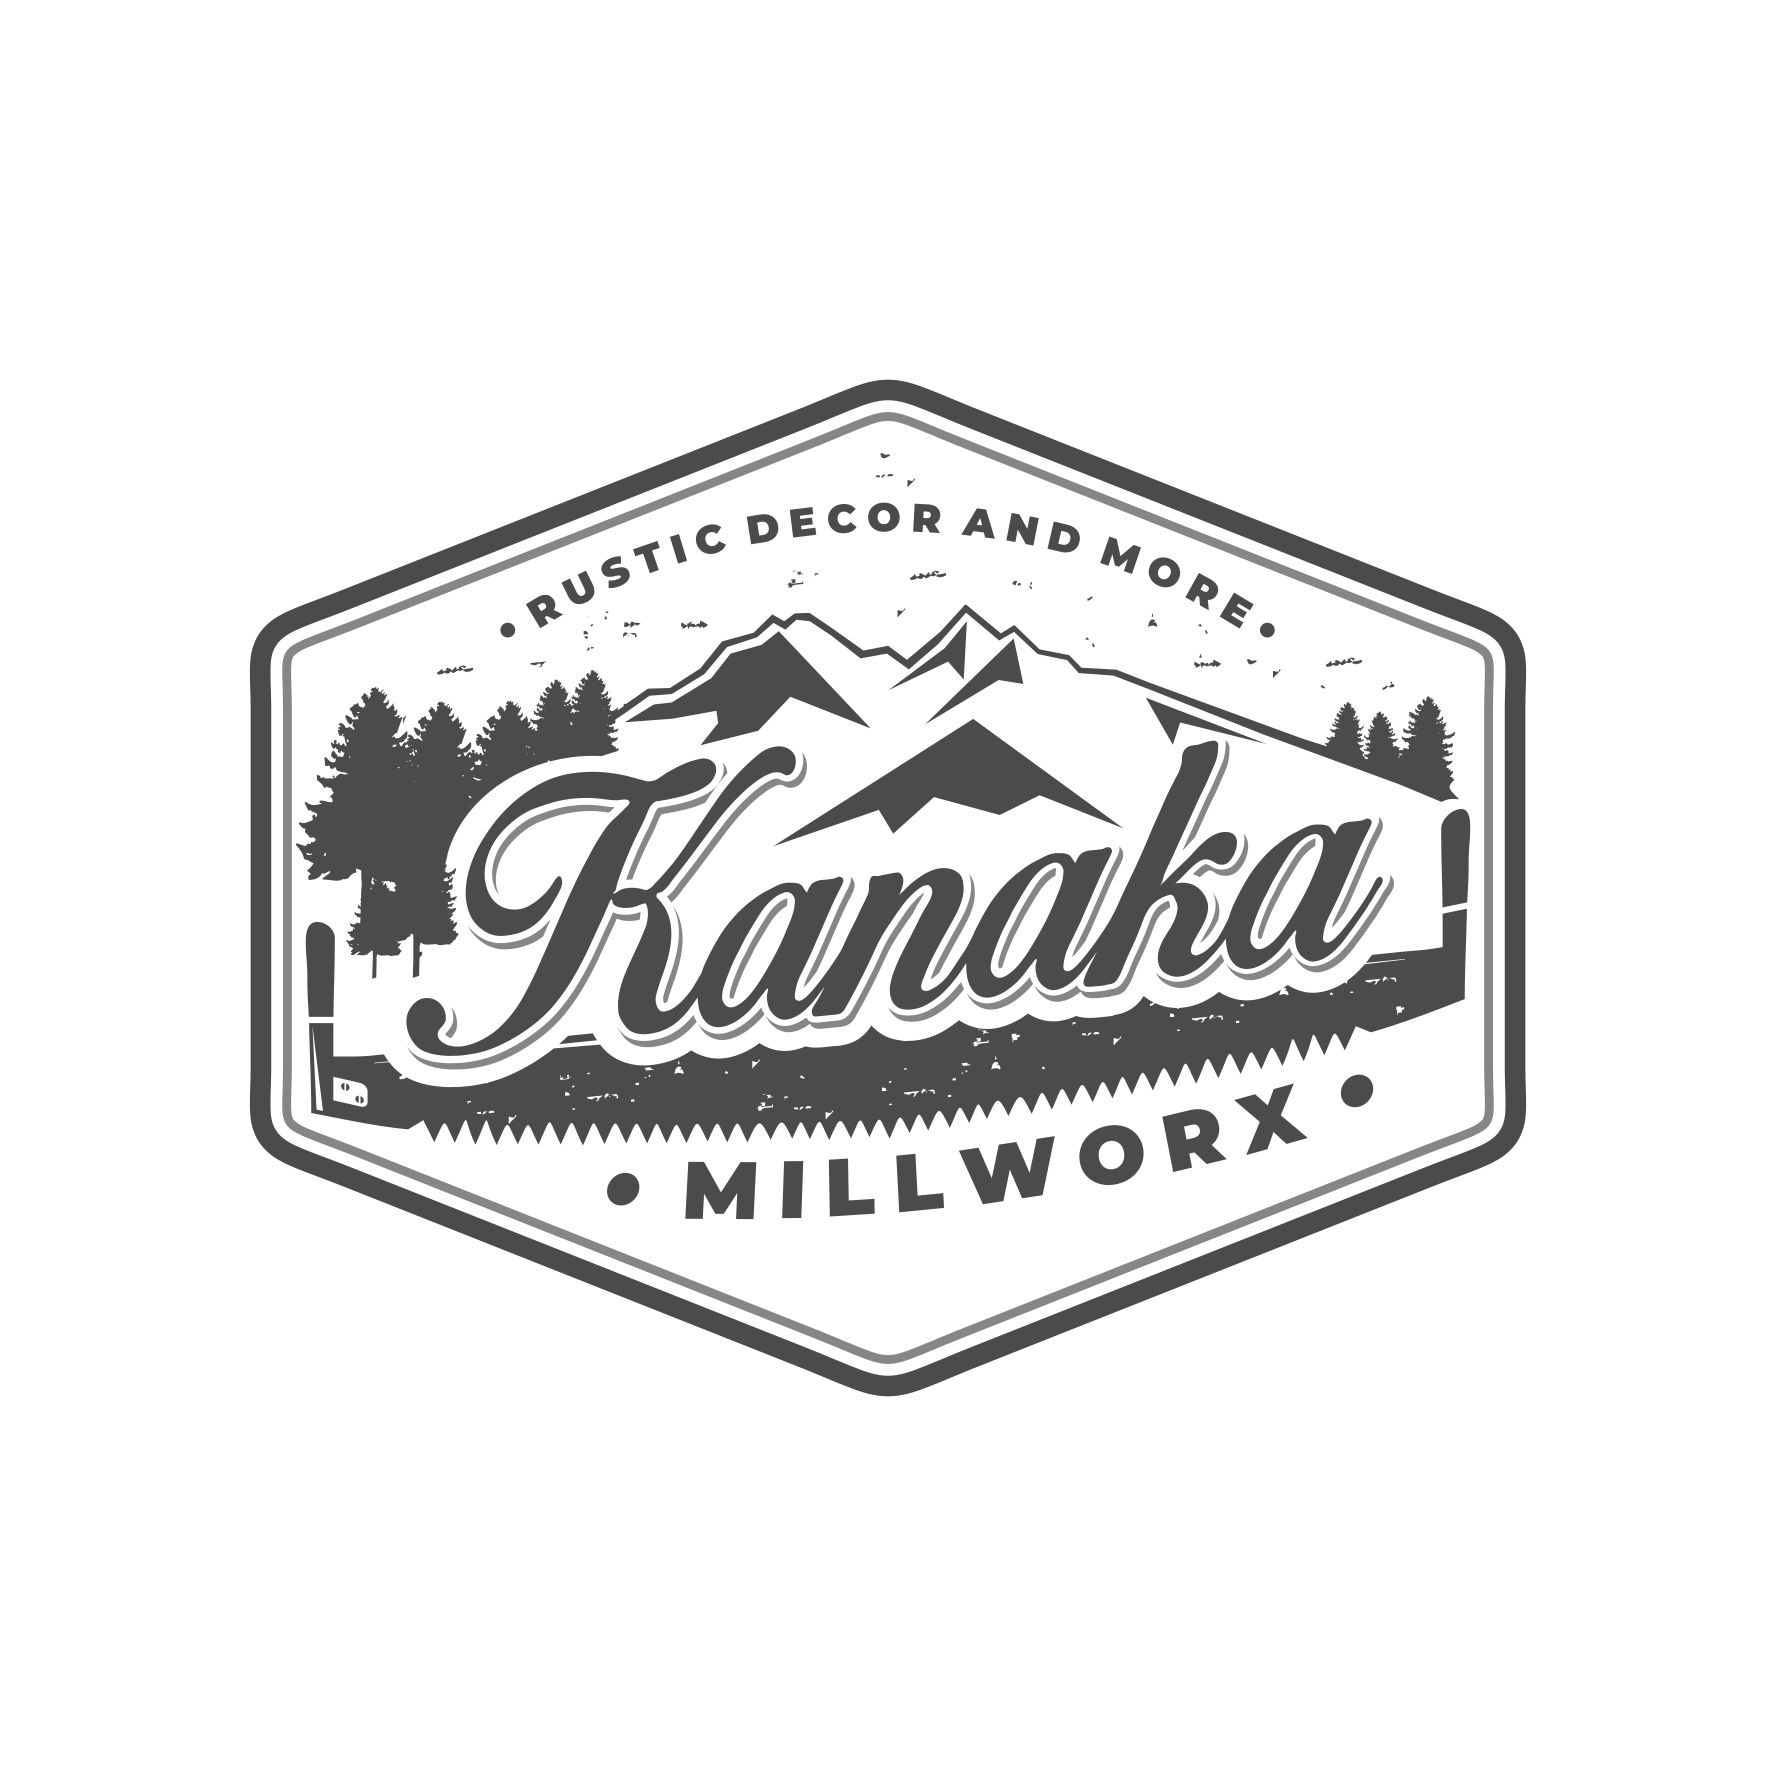 Create a vintage rustic millworking logo !